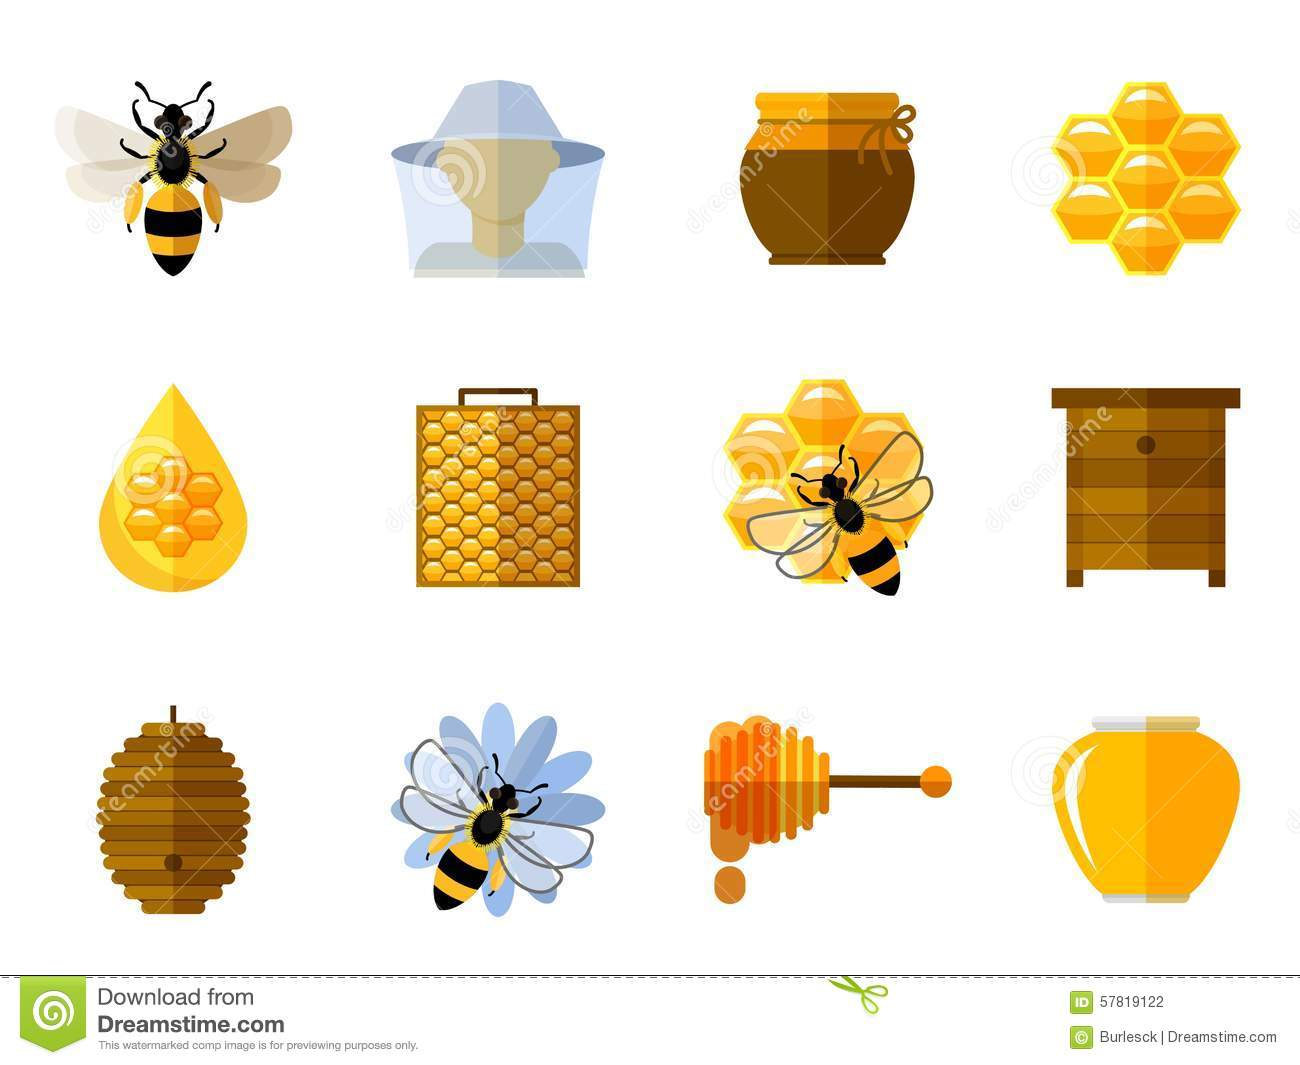 Bees Crafts, Activities, Lessons, Games, and Printables